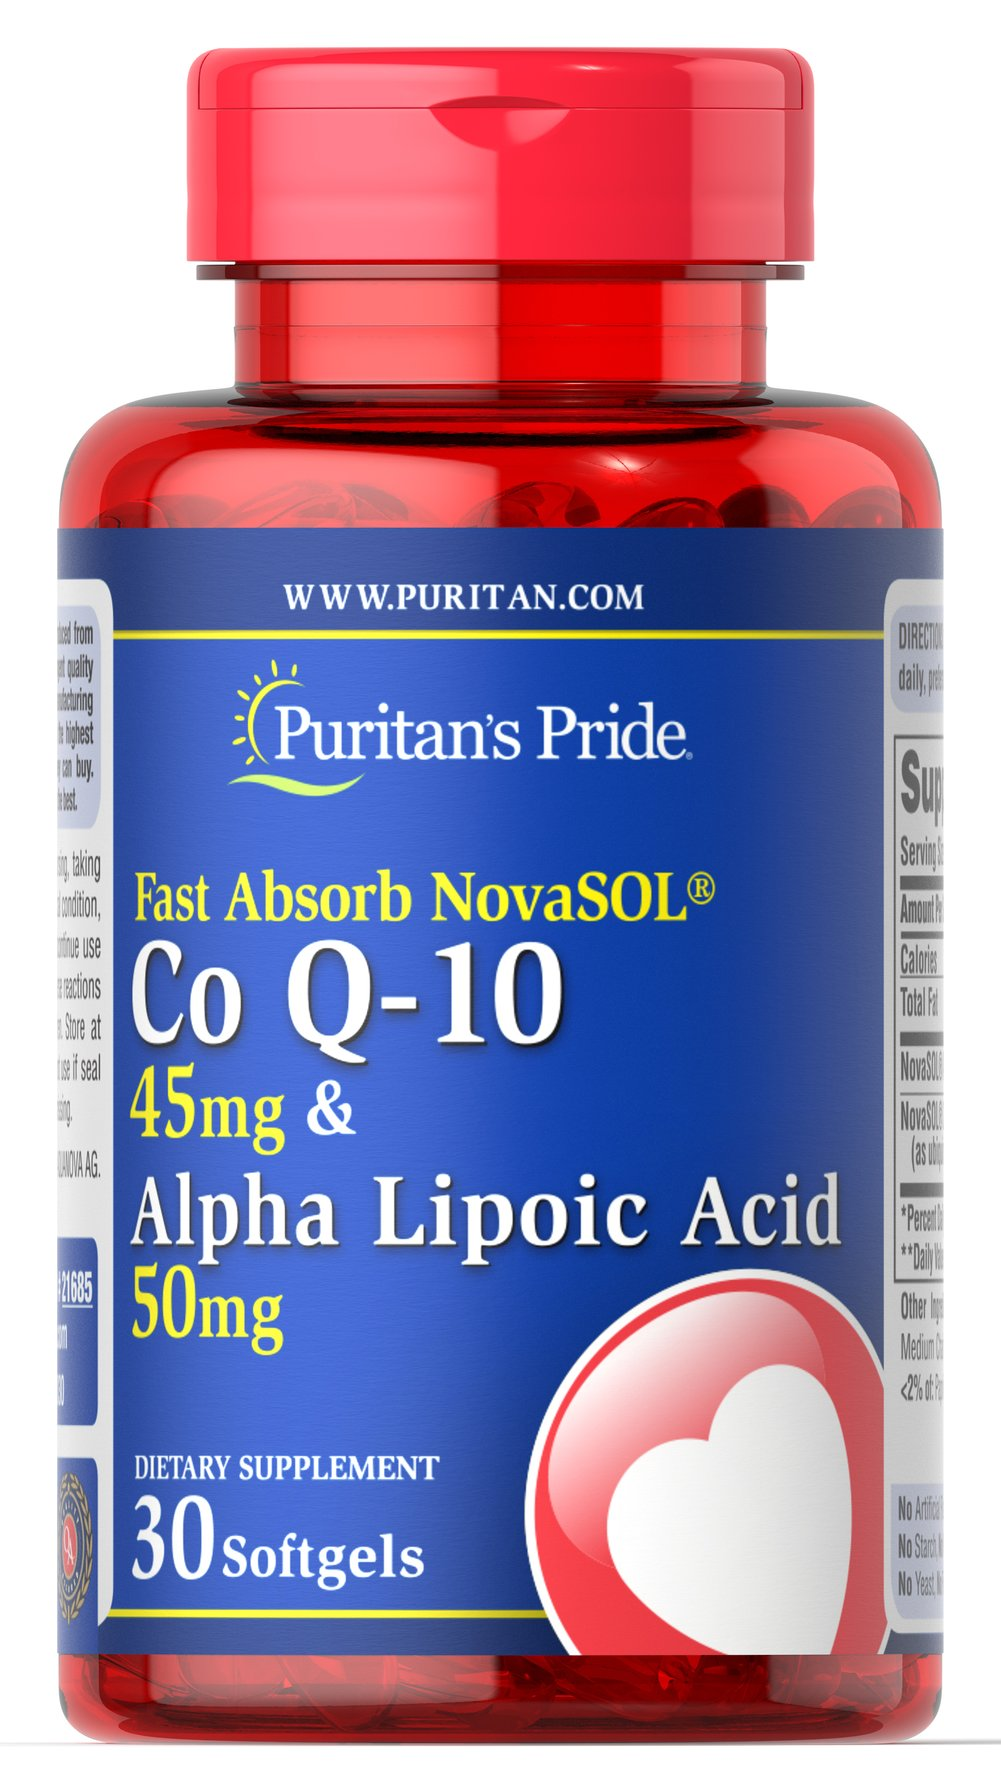 Fast Absorb NovaSOL® Co Q-10 45 mg & Alpha Lipoic Acid 50 mg Thumbnail Alternate Bottle View